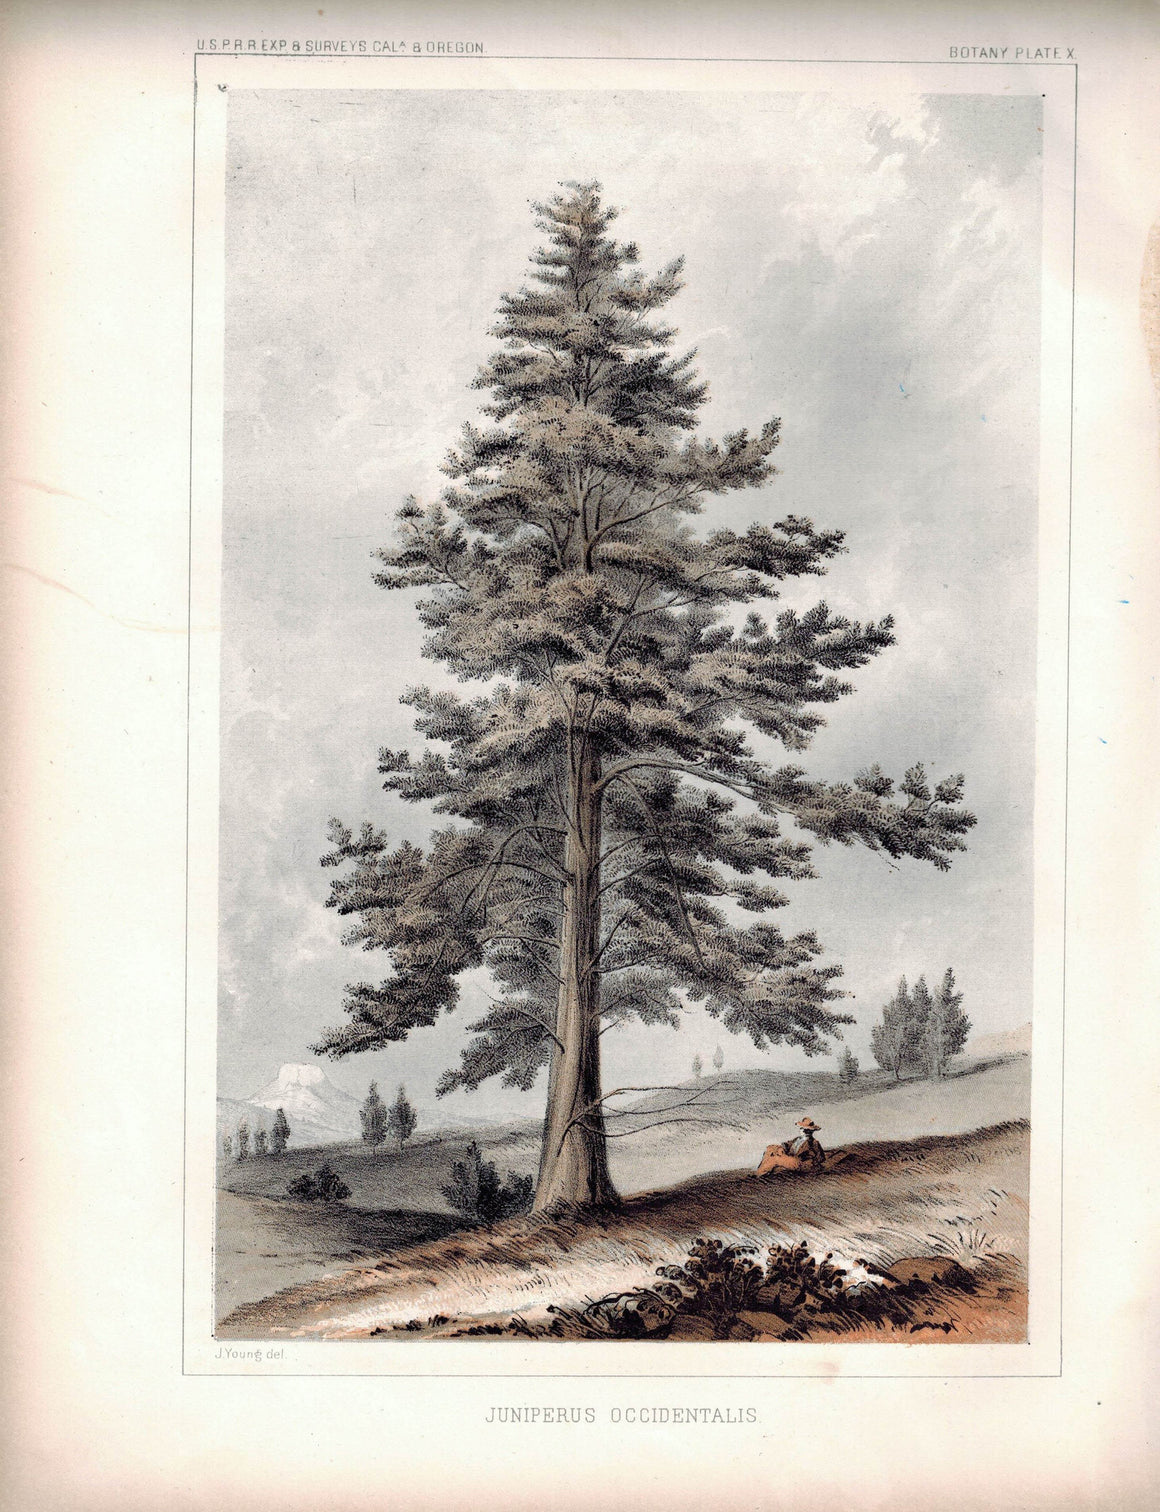 Juniperus Occidentalis Tree Antique Botany Plate X 1857 USPRR Survey Lithograph